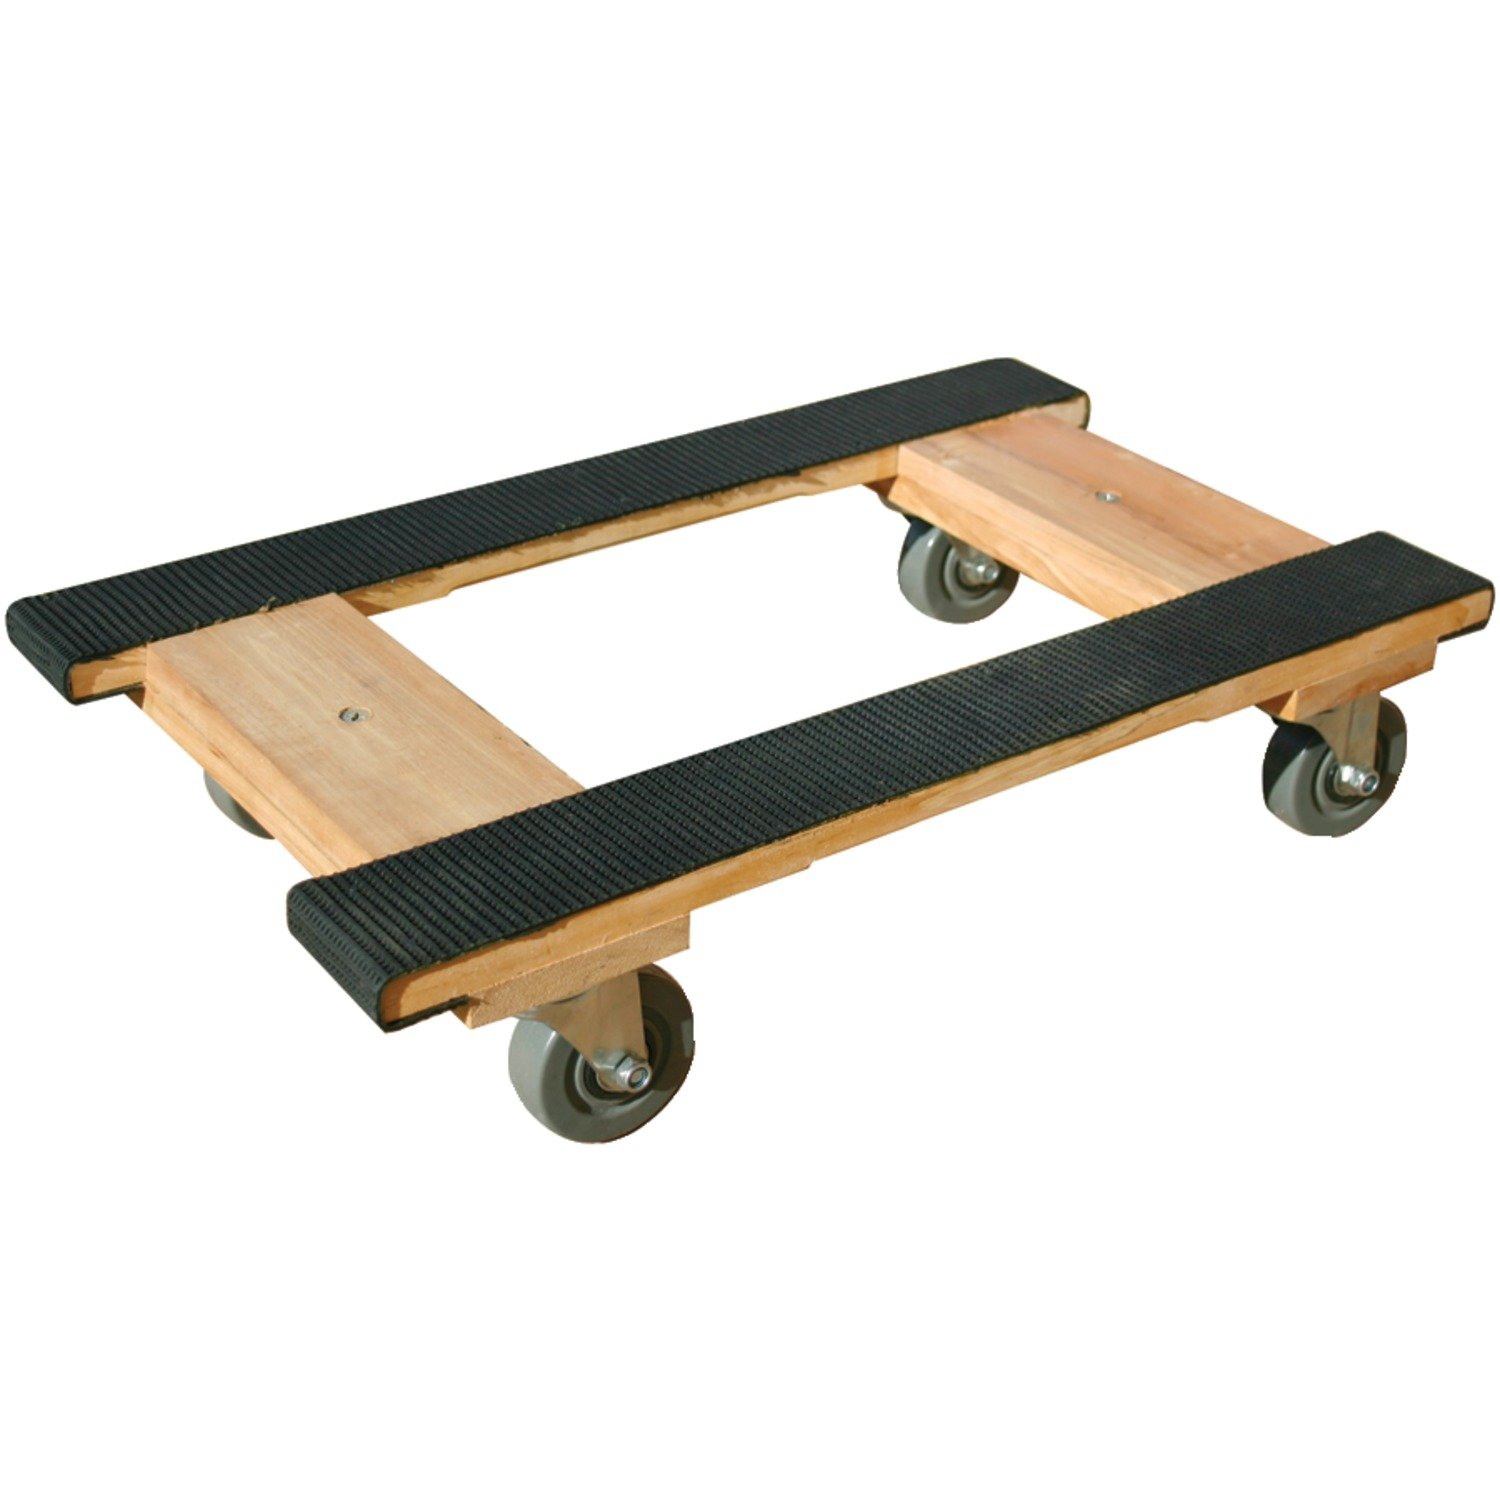 Monster Moving Supplies Mt10001 Wood 4-wheel Piano H Dolly